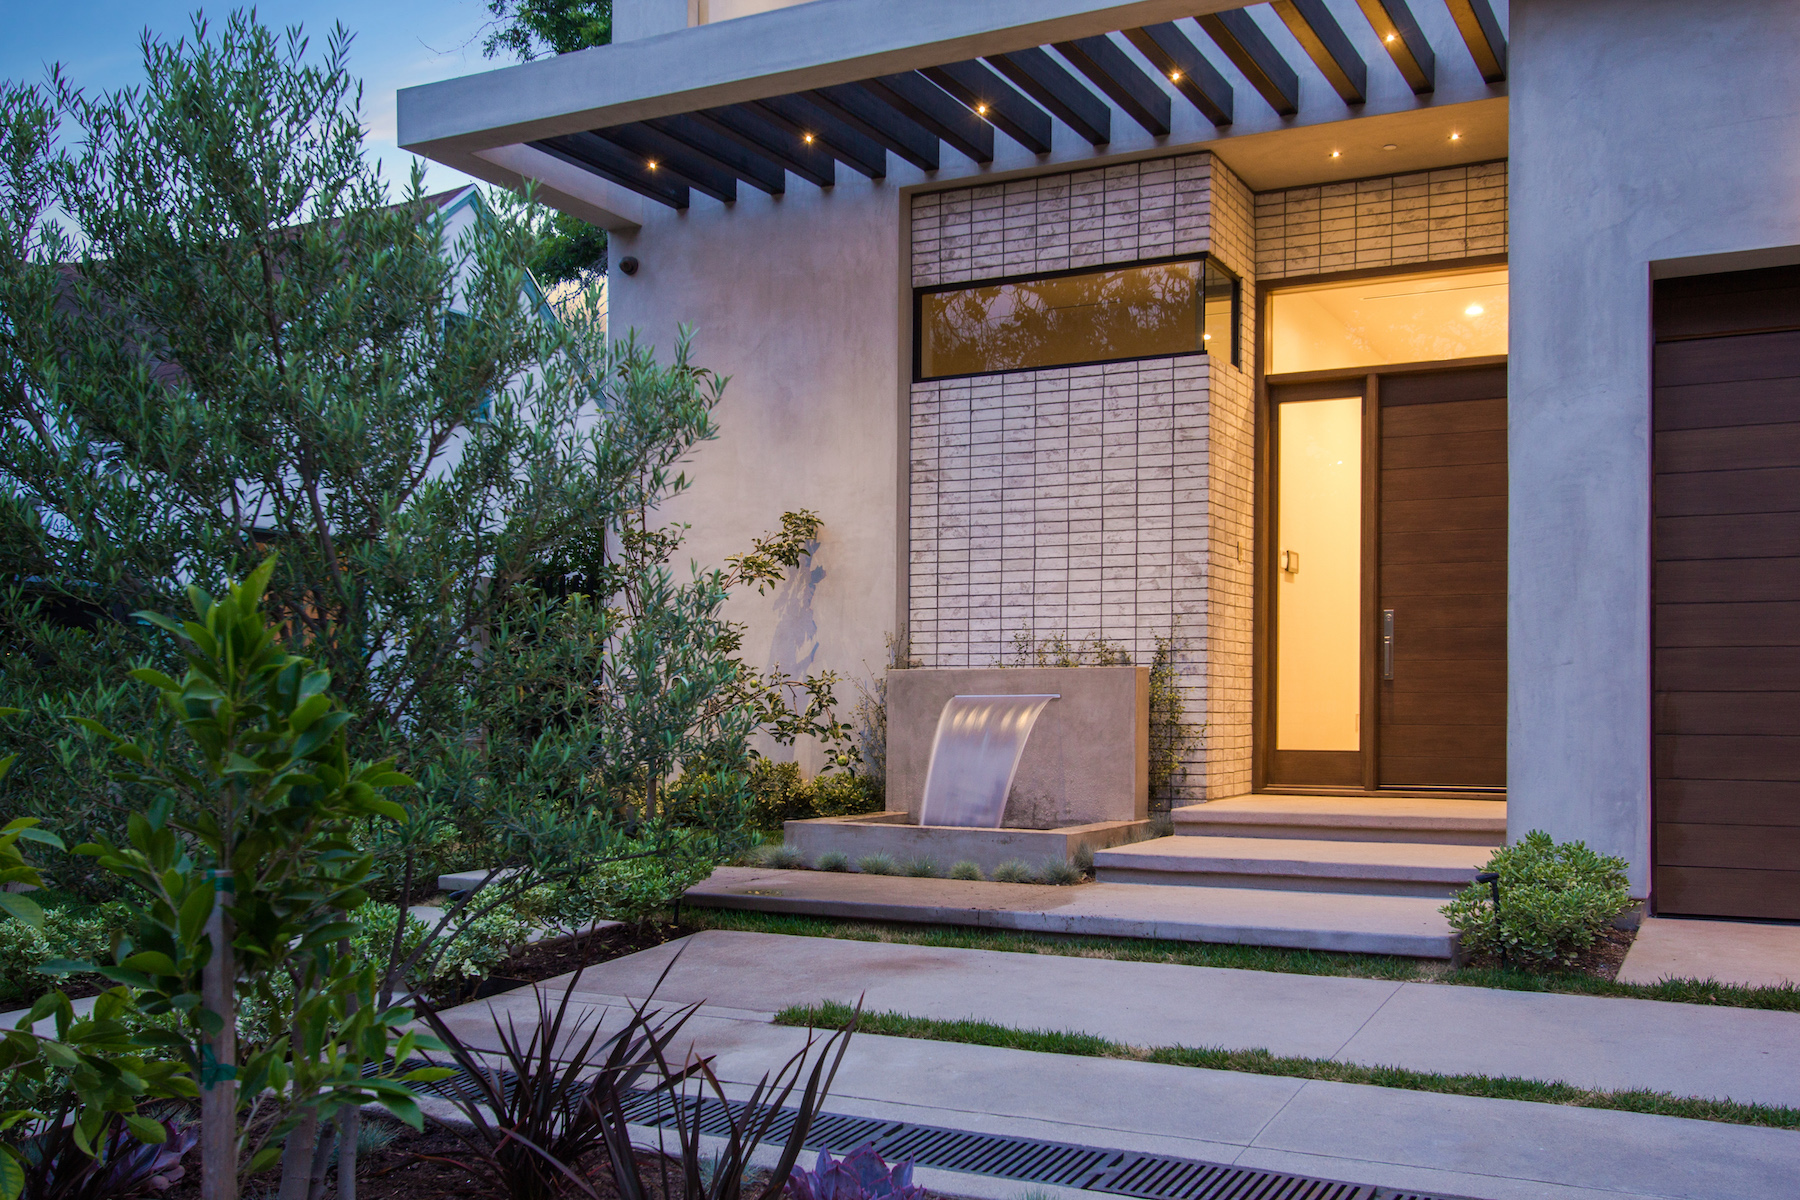 WestHollywood_Modern_1c_sm